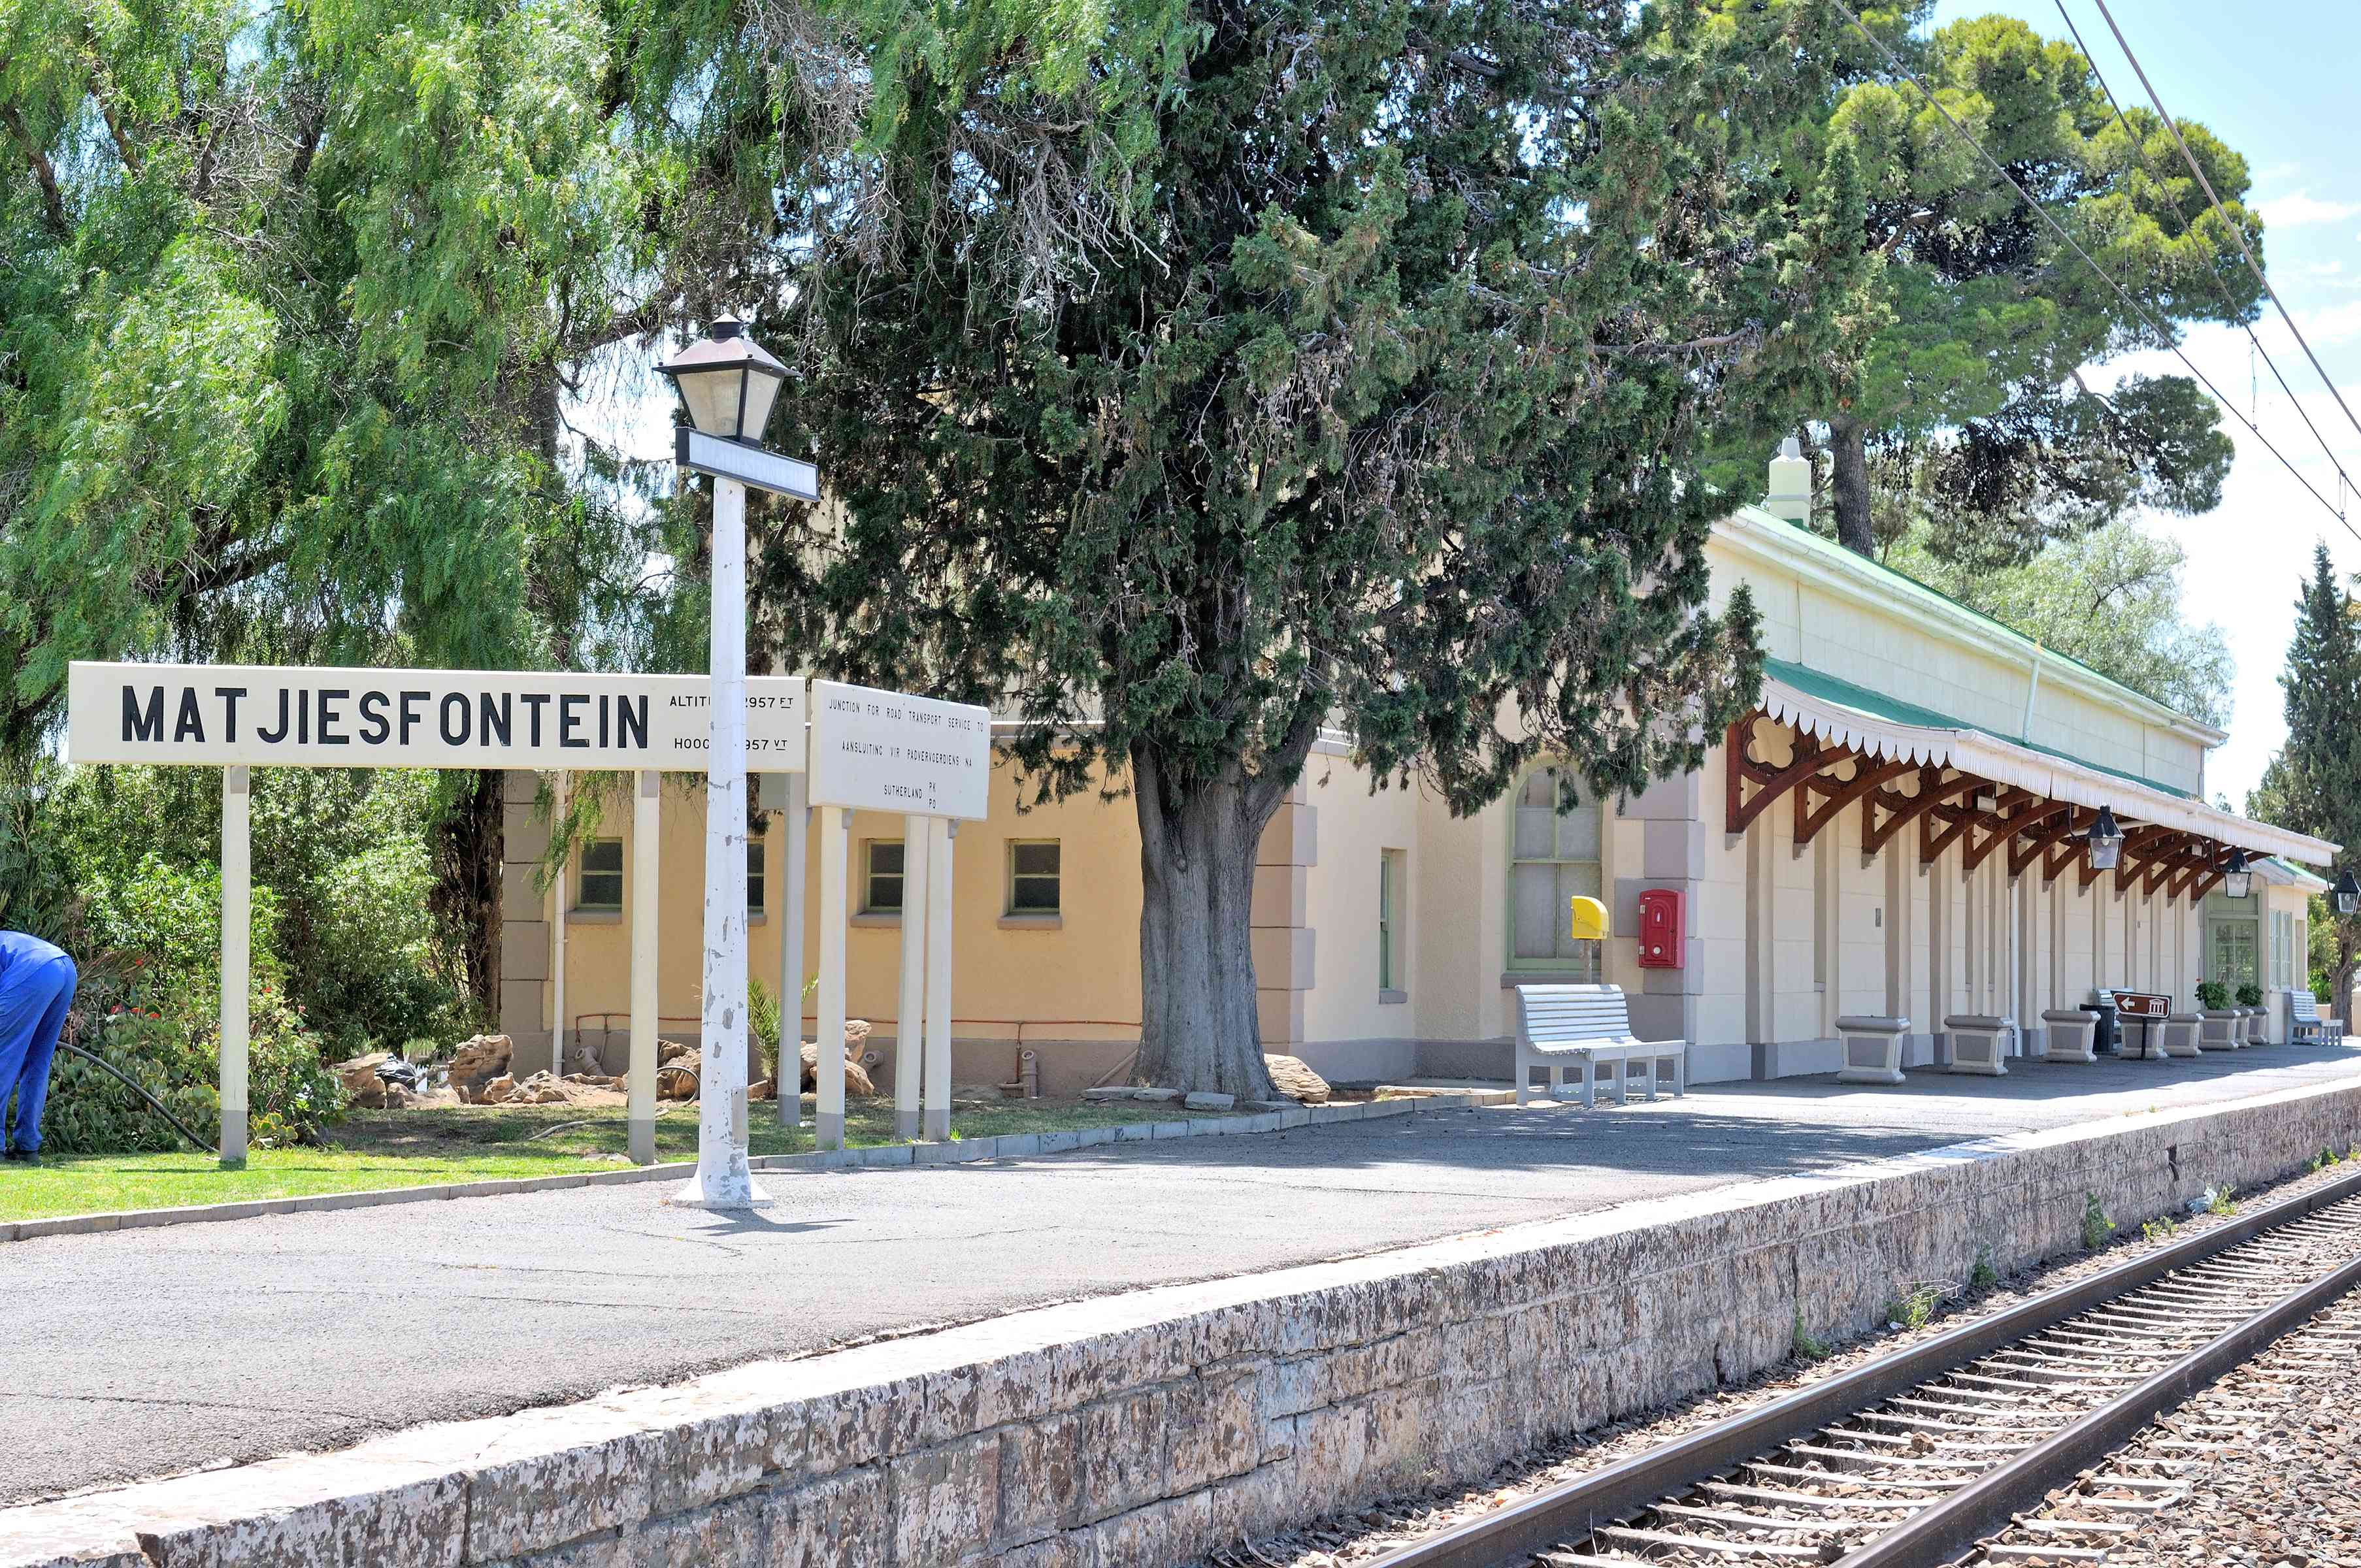 Matjiesfontein train station in the Central Karoo, South Africa